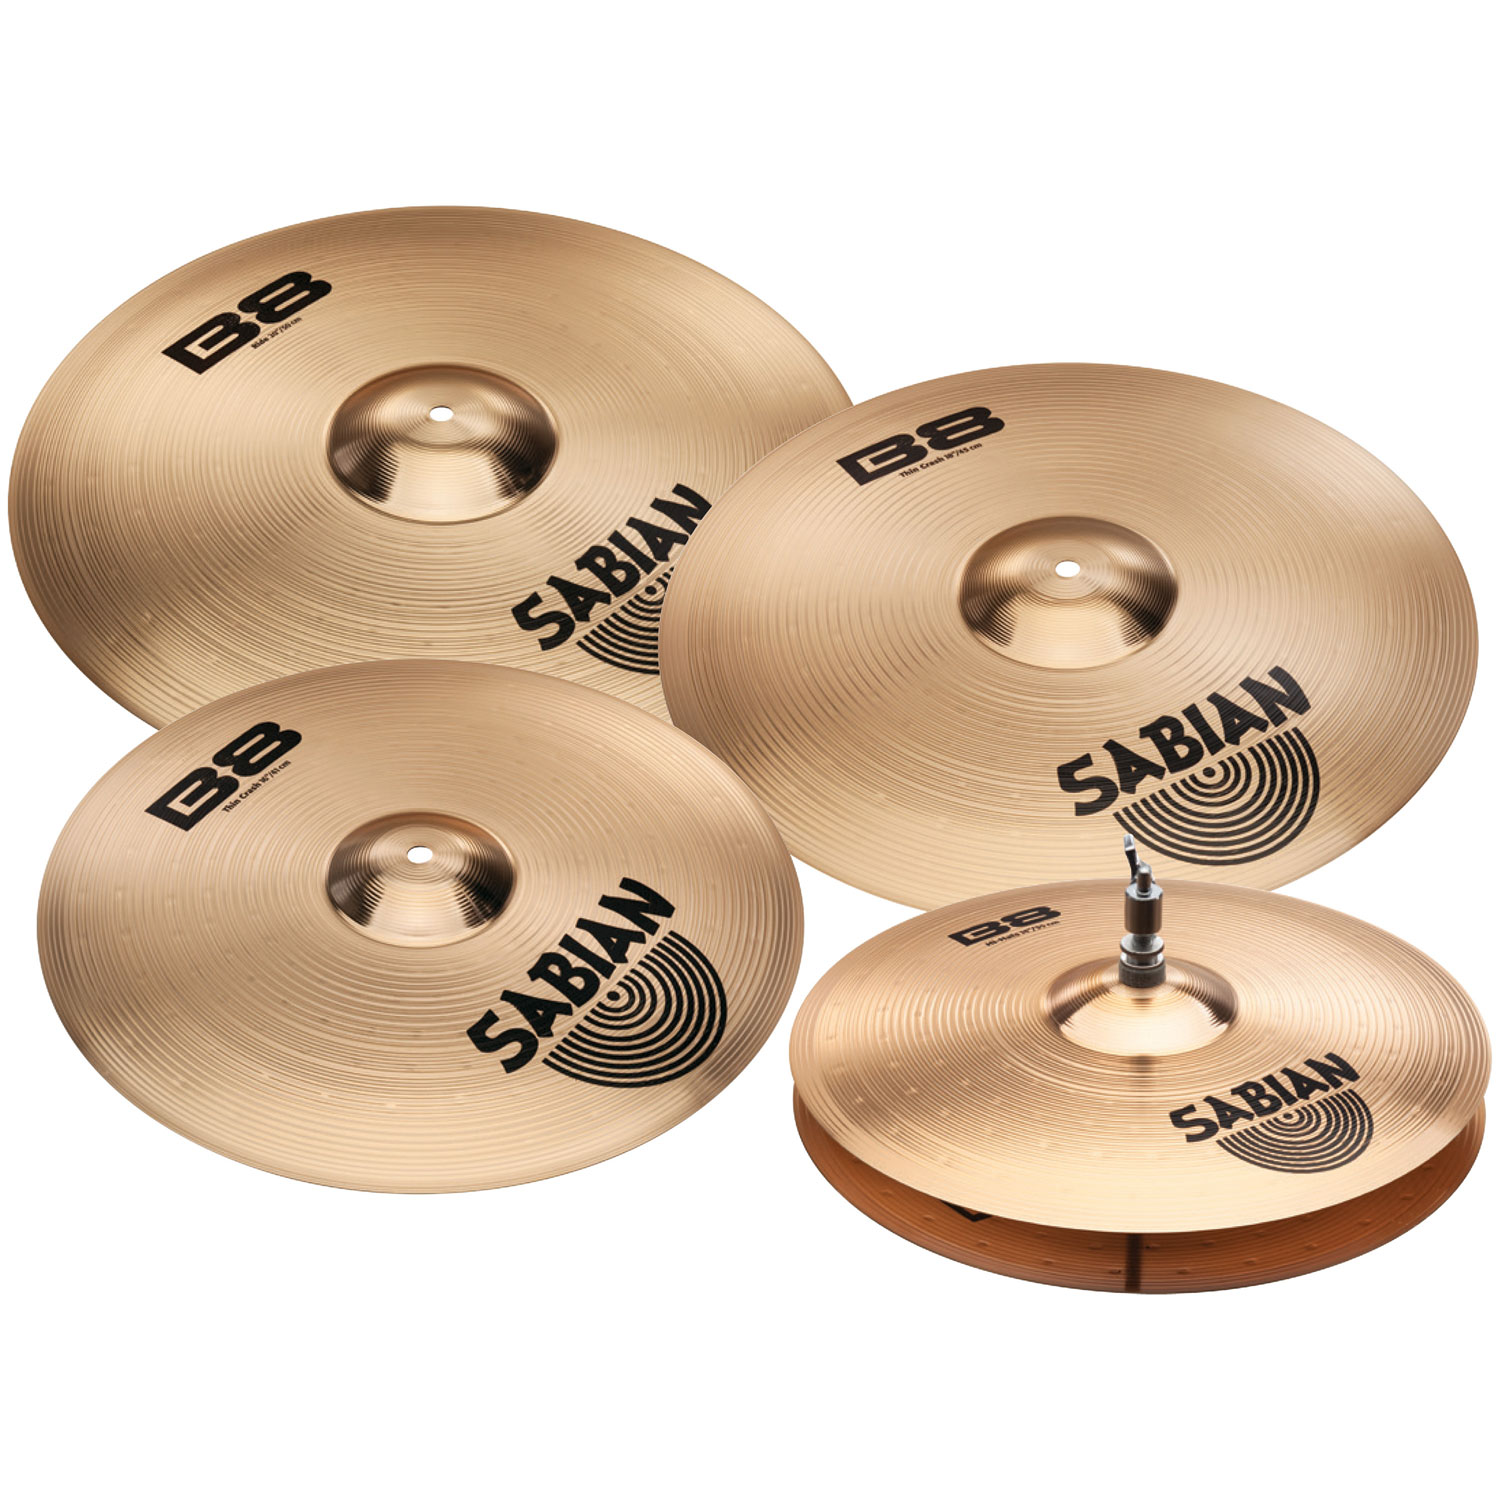 sabian b8 performance set plus 3 piece cymbal box set with free 18 crash hi hats 2 crashes ride. Black Bedroom Furniture Sets. Home Design Ideas